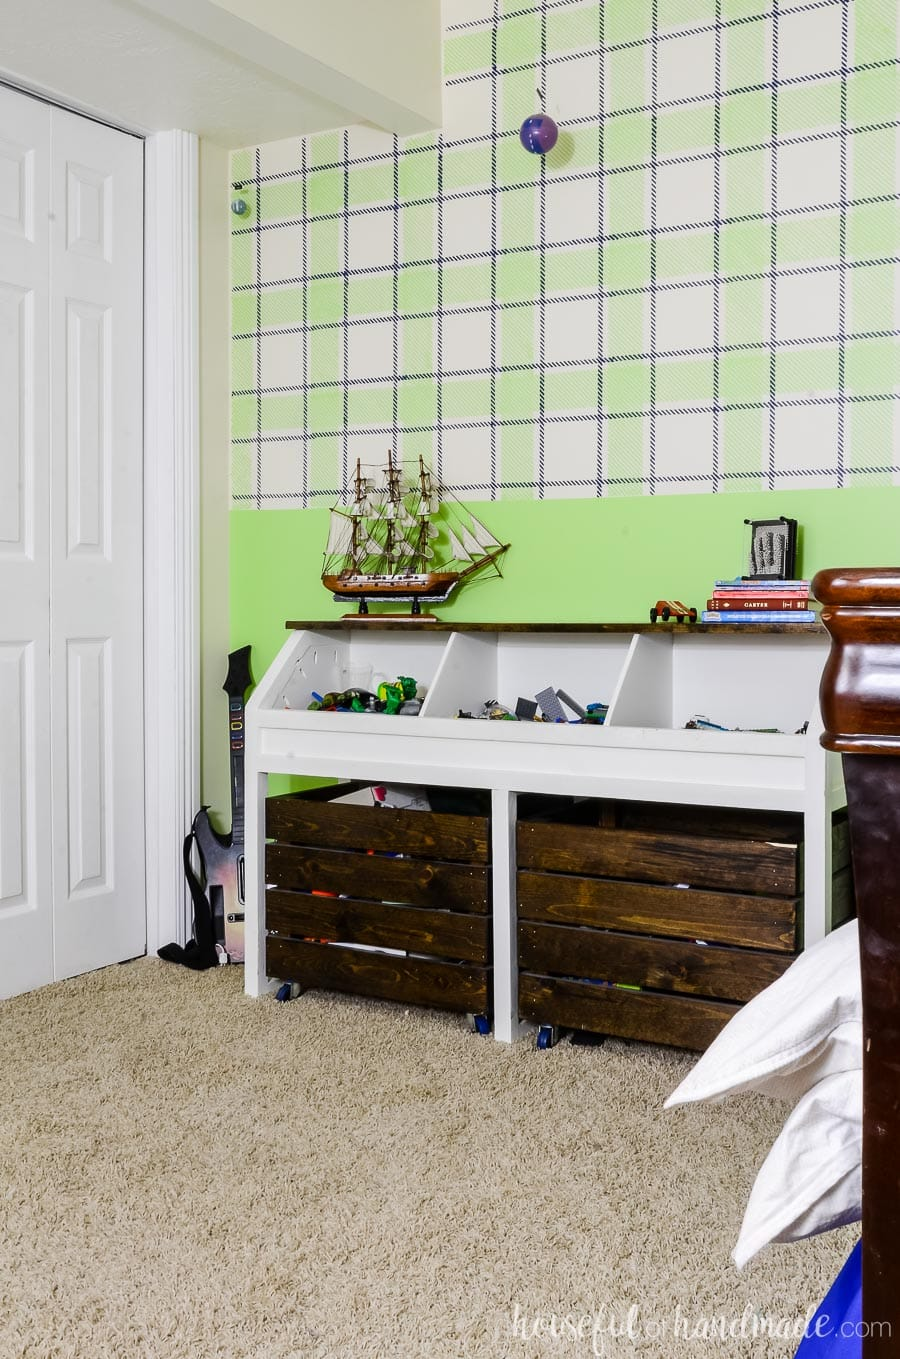 White and dark wood toy storage unit with open bins on the top and large rolling bins underneath. In a boys bedroom with a green plaid painted wall and neutral beige carpet.